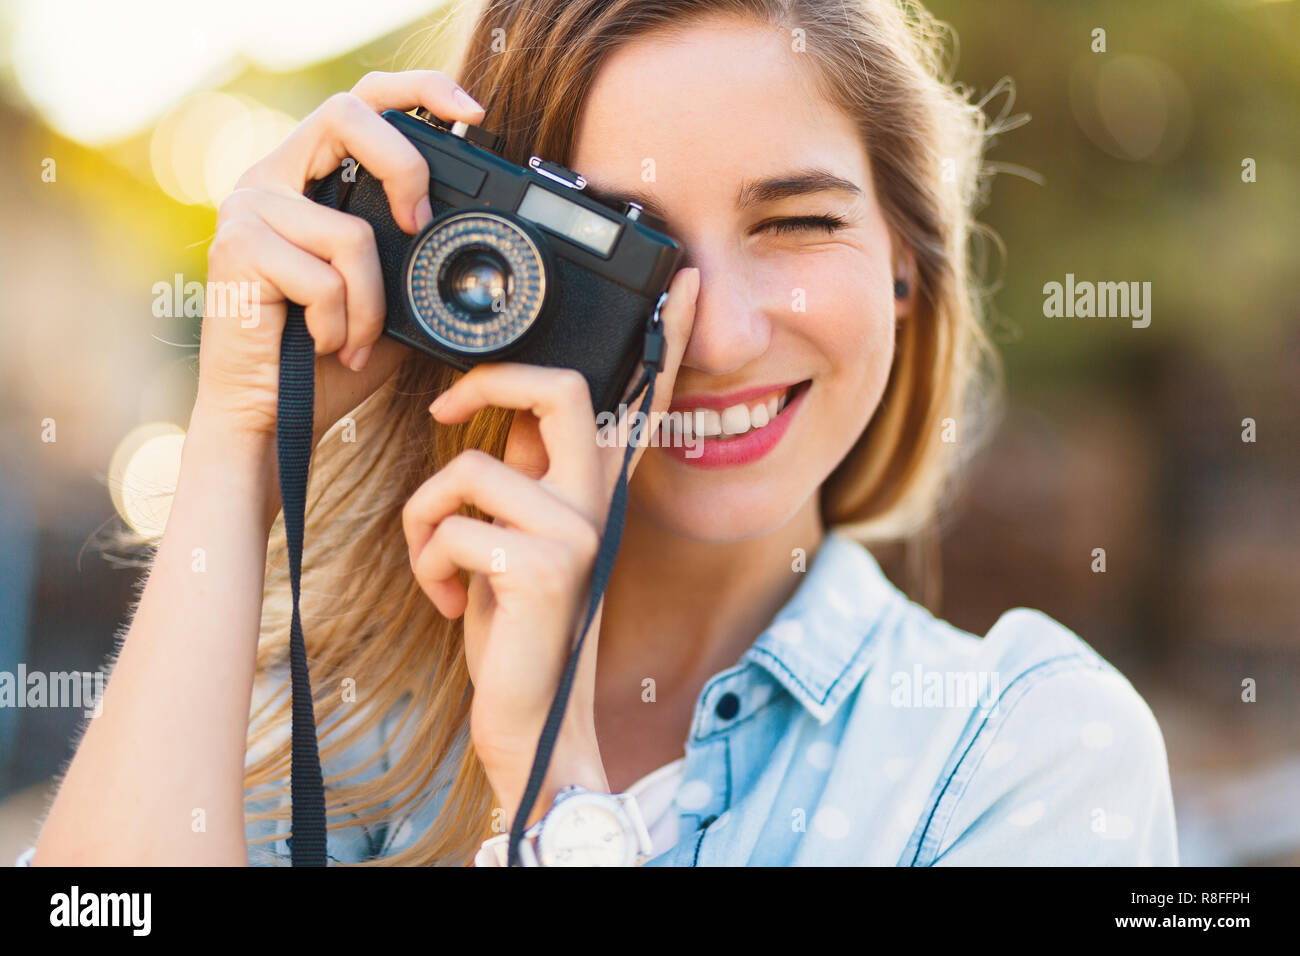 Pretty girl taking photos with a vintage camera on a sunny day, holding it near her eye, smiling. She wears blue sky denim shirt with white big dots a - Stock Image